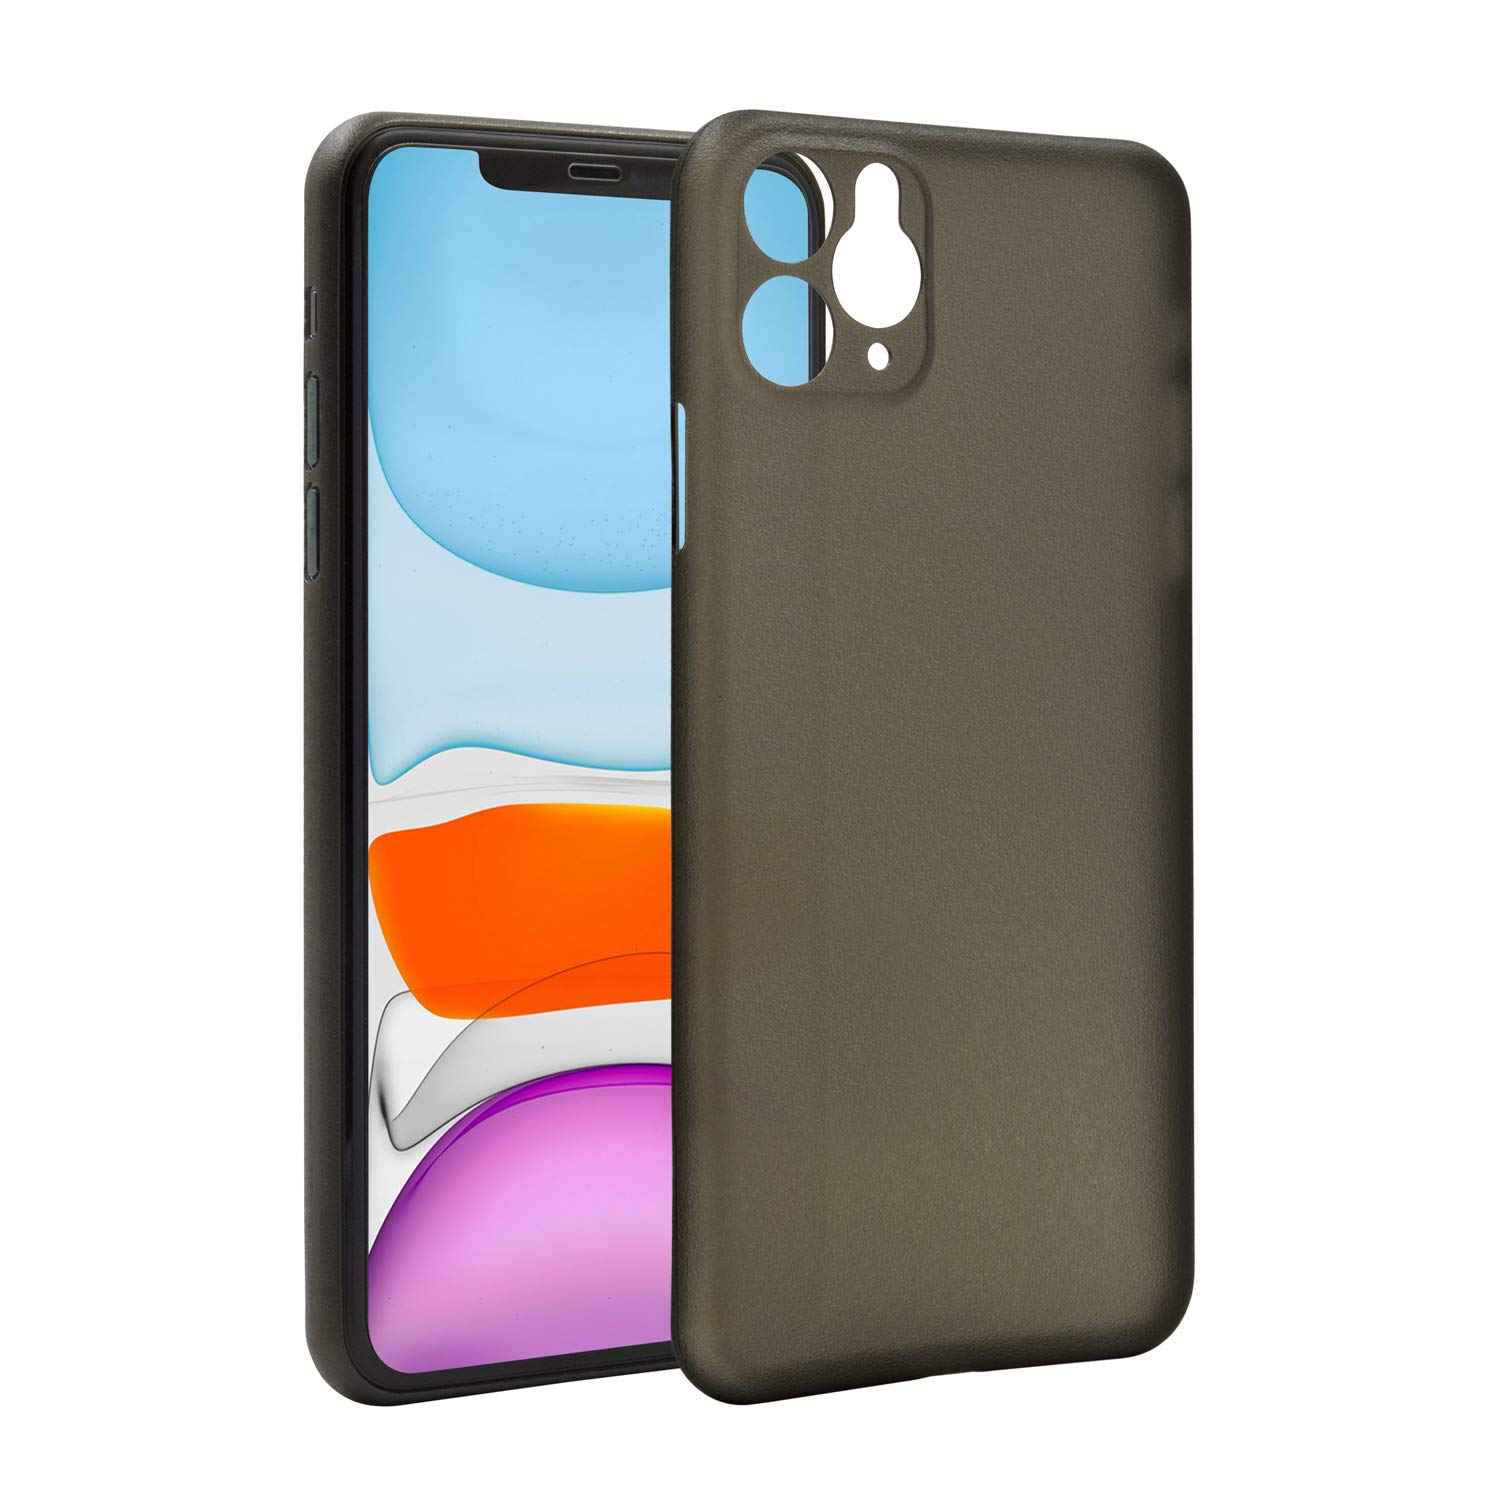 Twinscase Slim Fit Light iPhone 11 Pro Minimalist Case, Ultra-Thin Full Protective Ultra-Light Cover with Matte Finish Phone Case for iPhone 11 Pro 5.8 inch (2019), Frosted Black